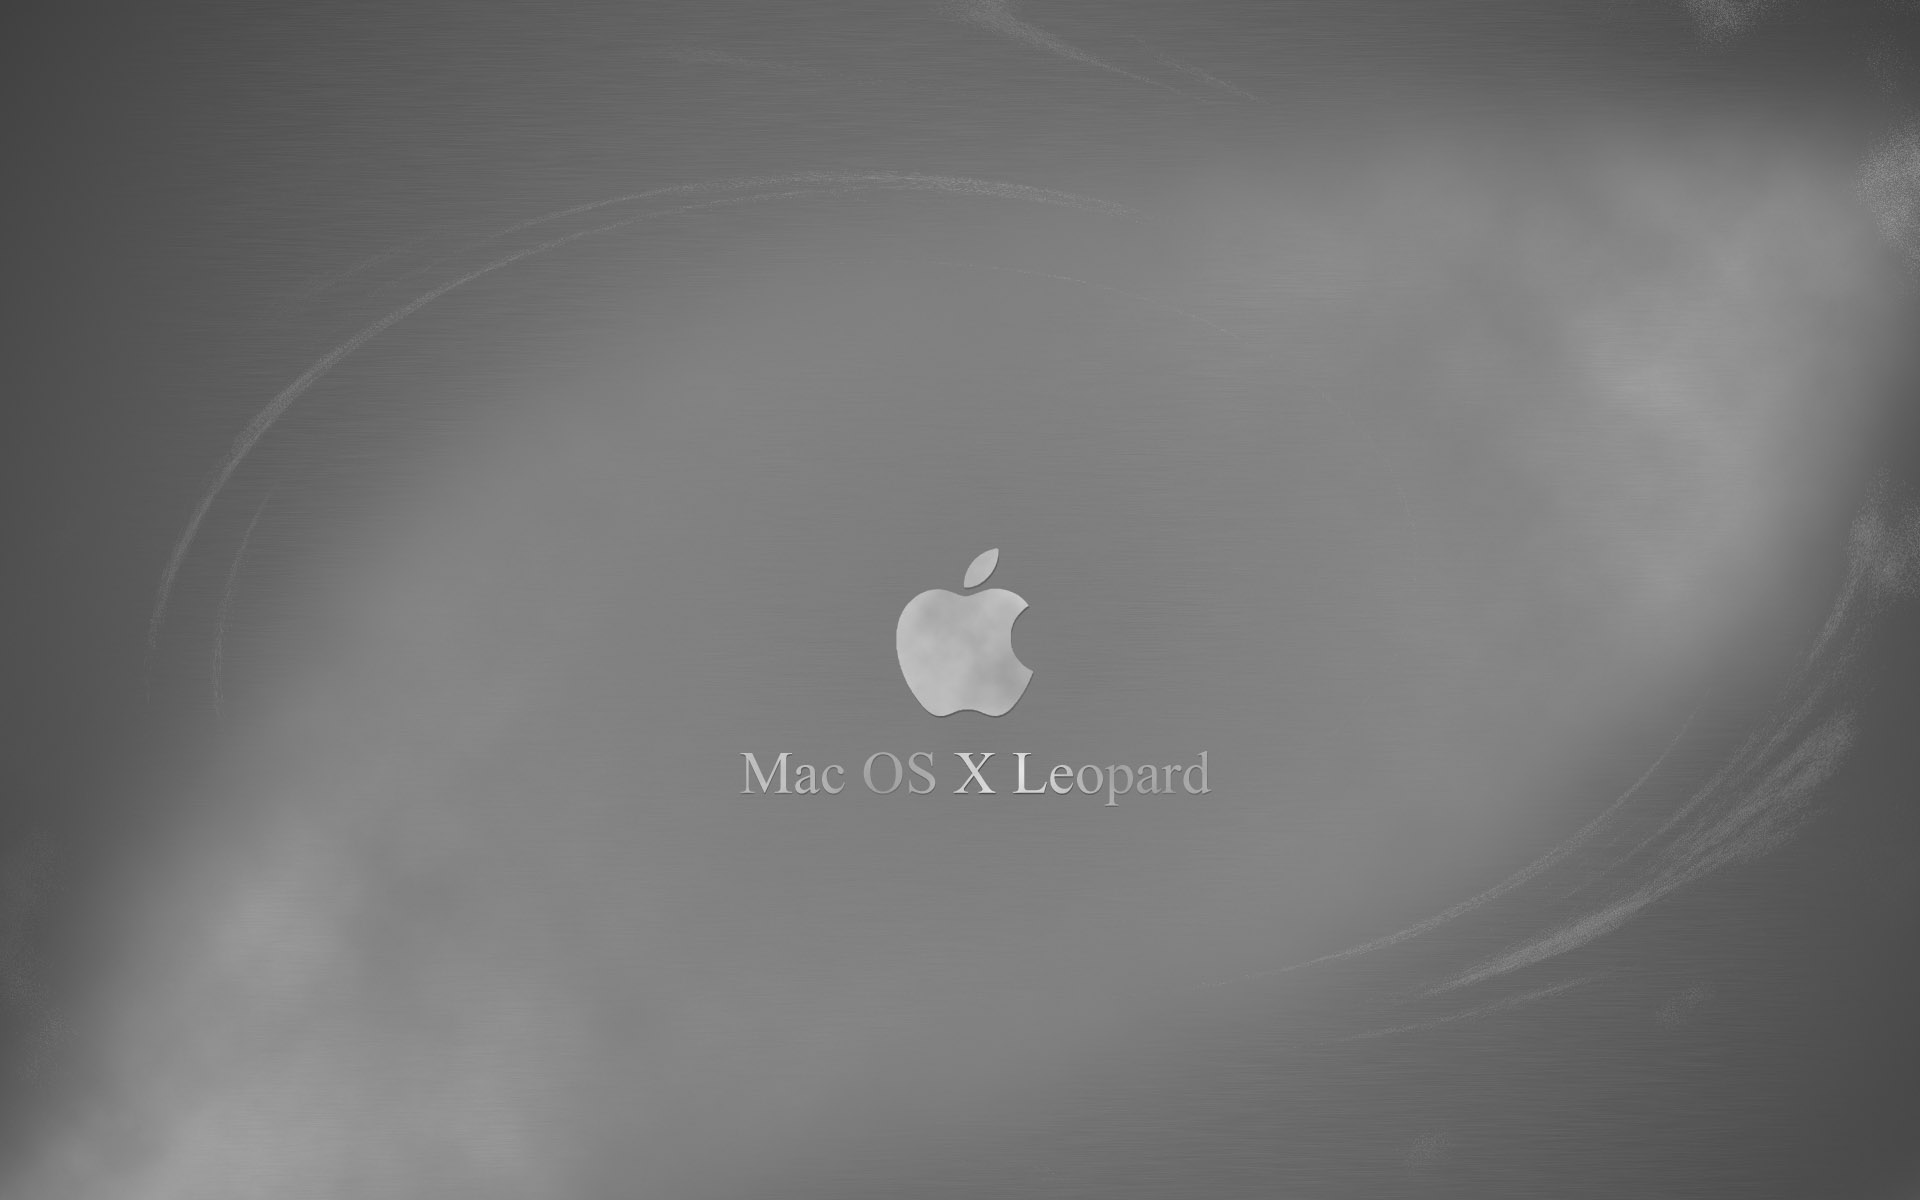 HD Apple wallpaper 18287